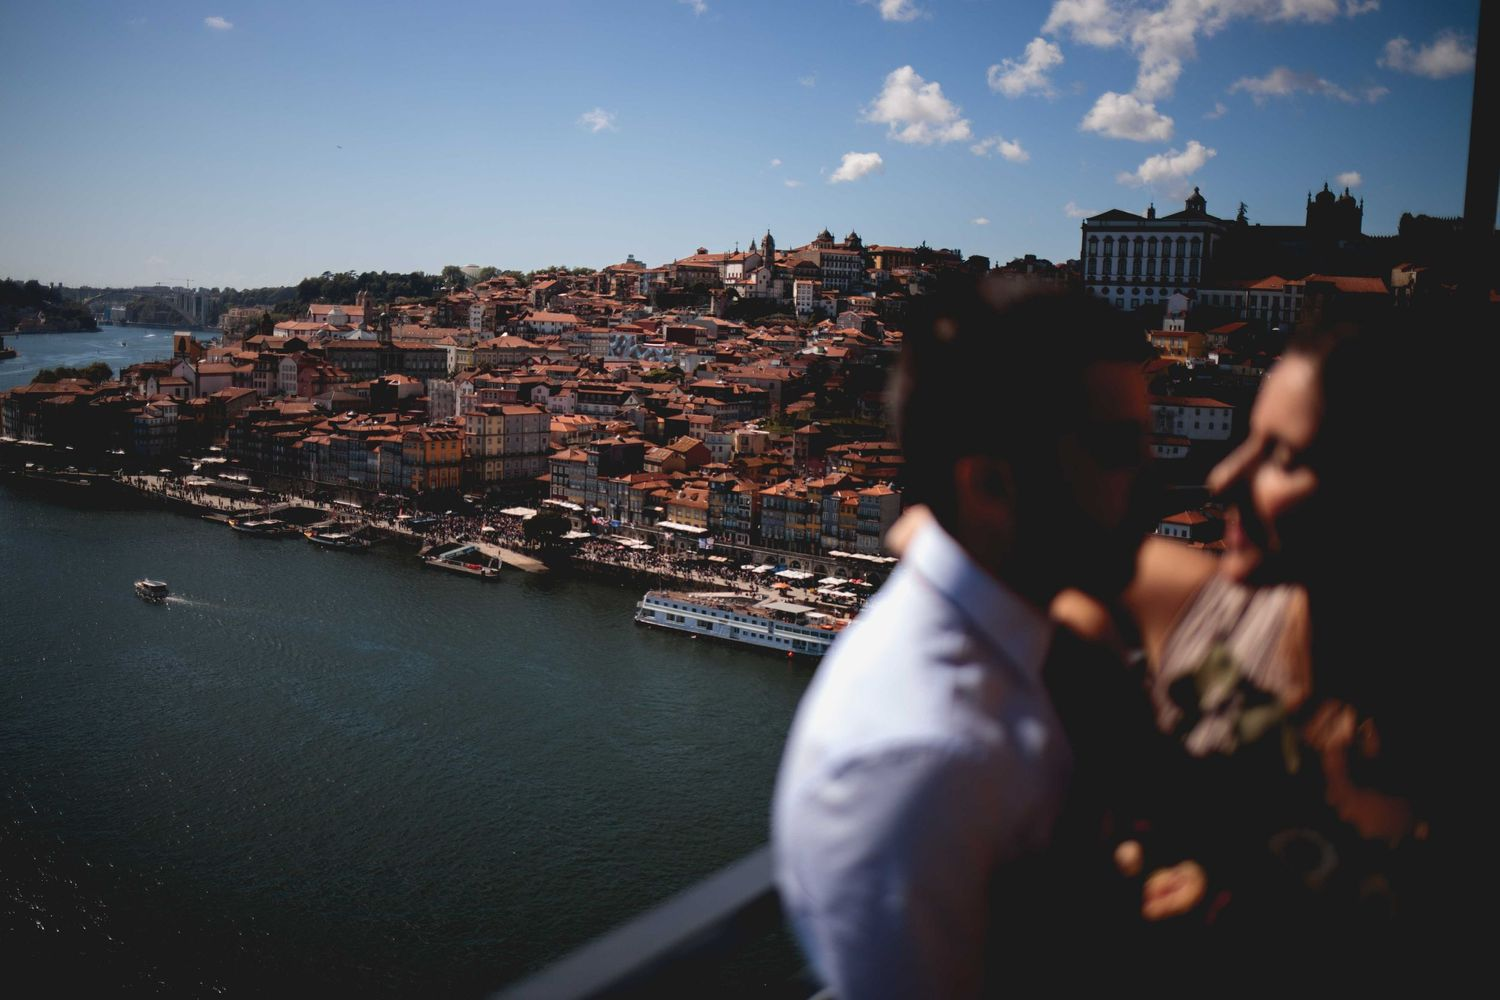 Elopement wedding in Portugal Elopement wedding no Porto elopement wedding portugal casamento a dois em portugal